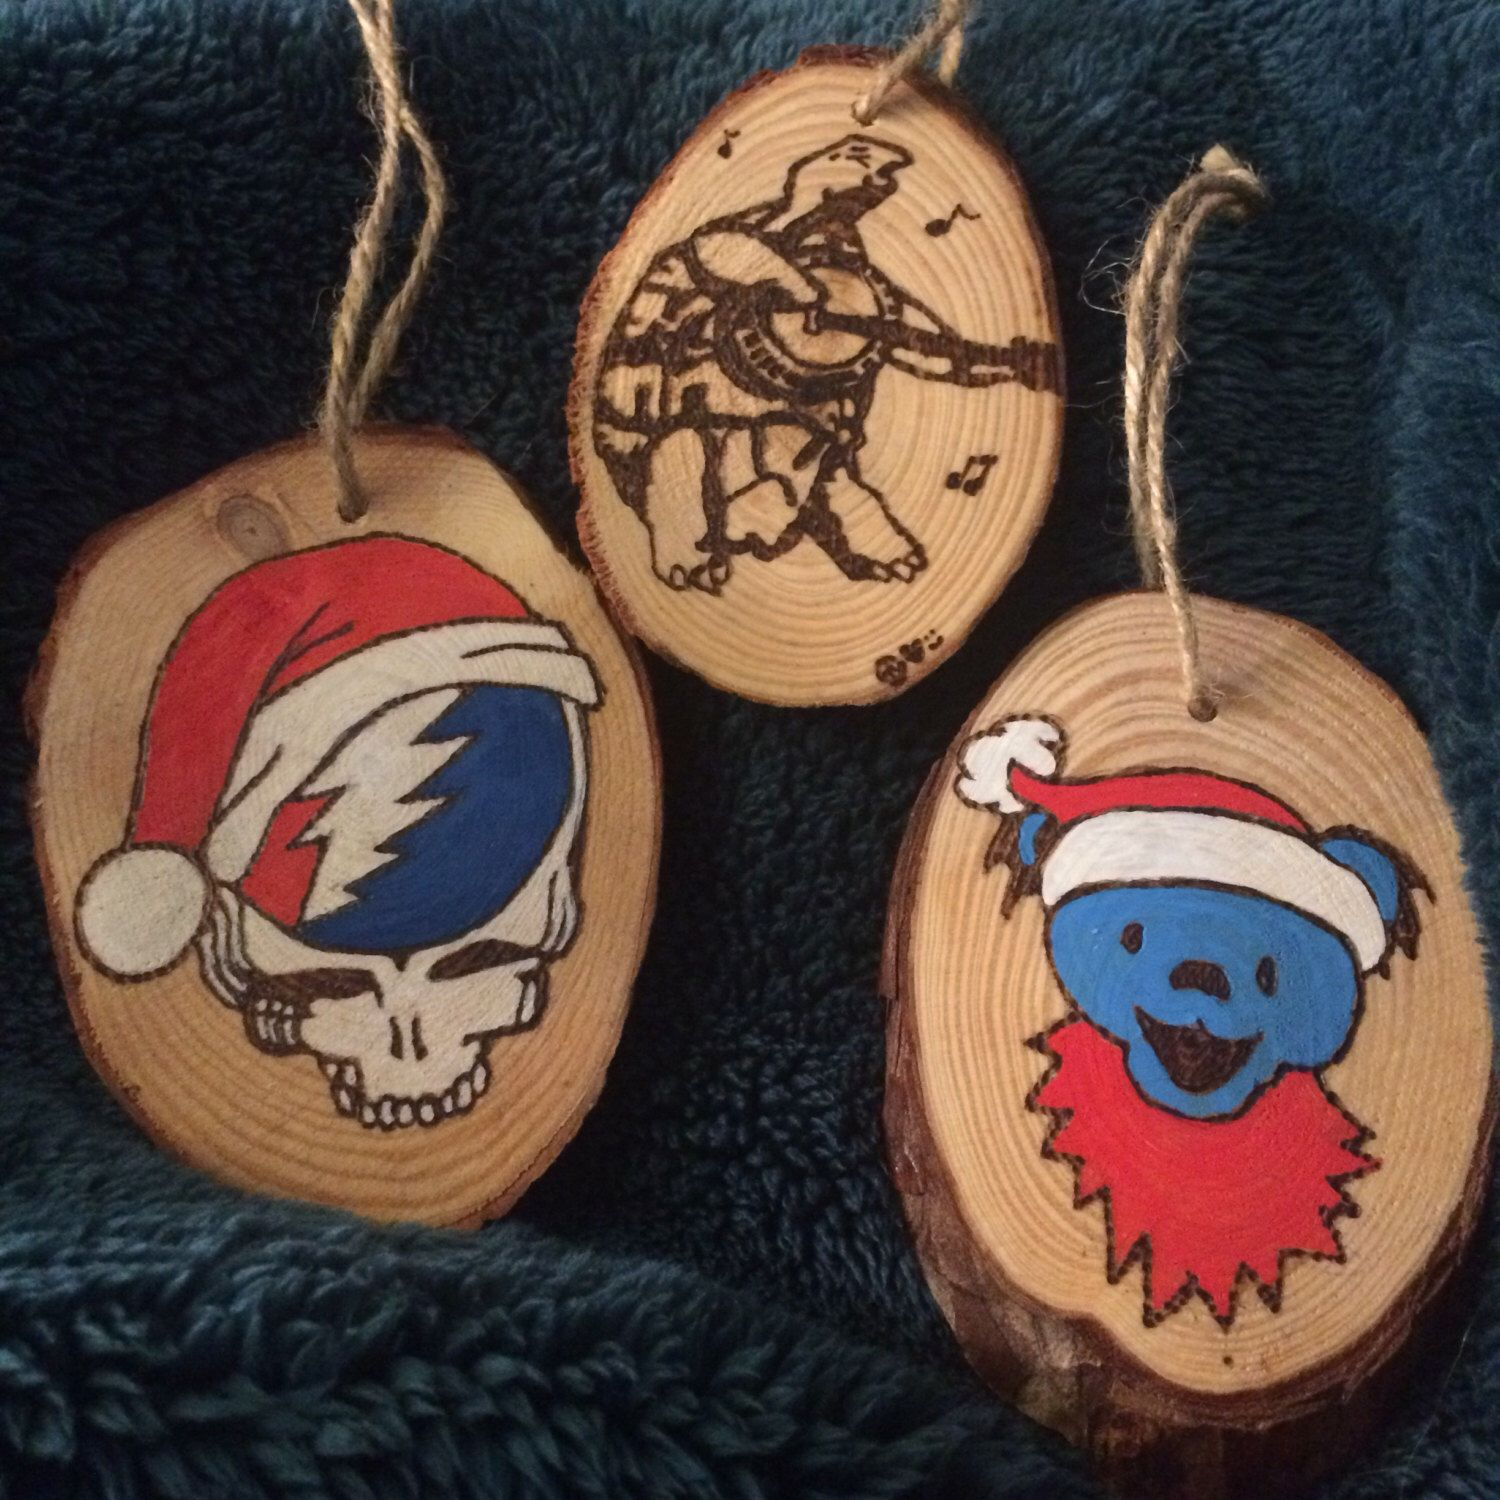 Grateful Dead Christmas Ornament.Pin By Micaila Lee On My Creations Grateful Dead